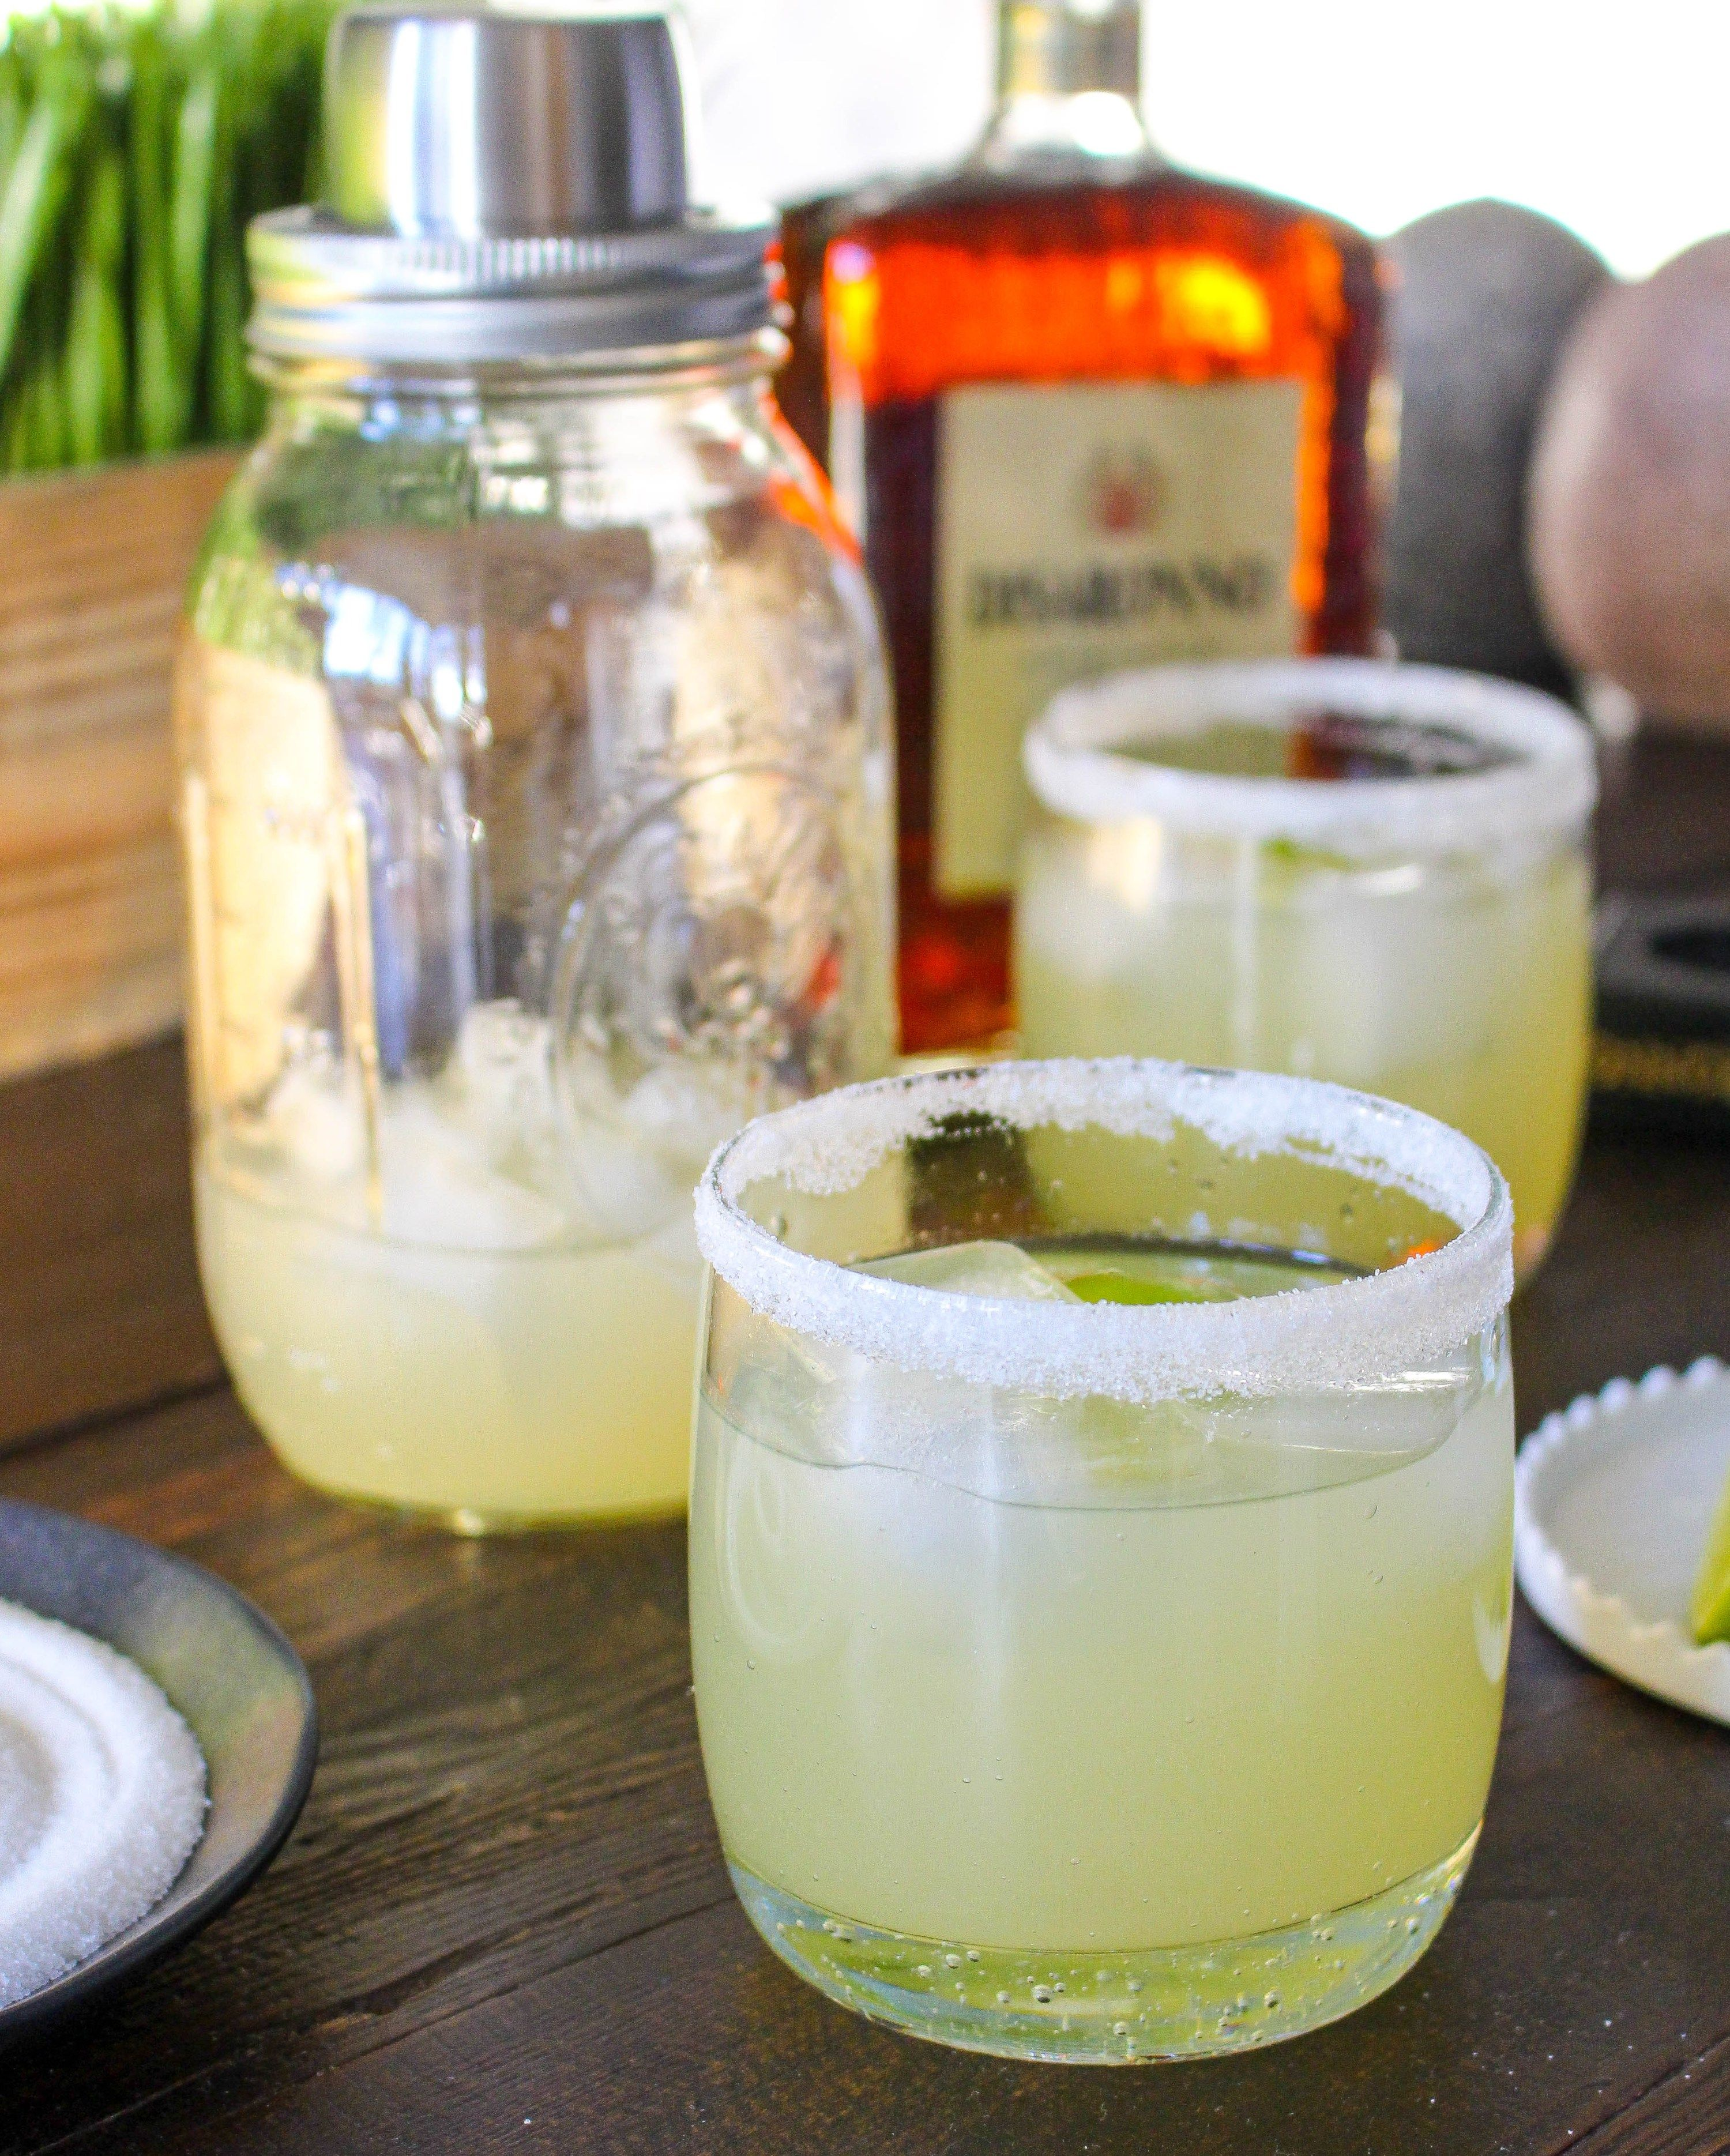 Amaretto margaritas with homemade sweetandsour mix